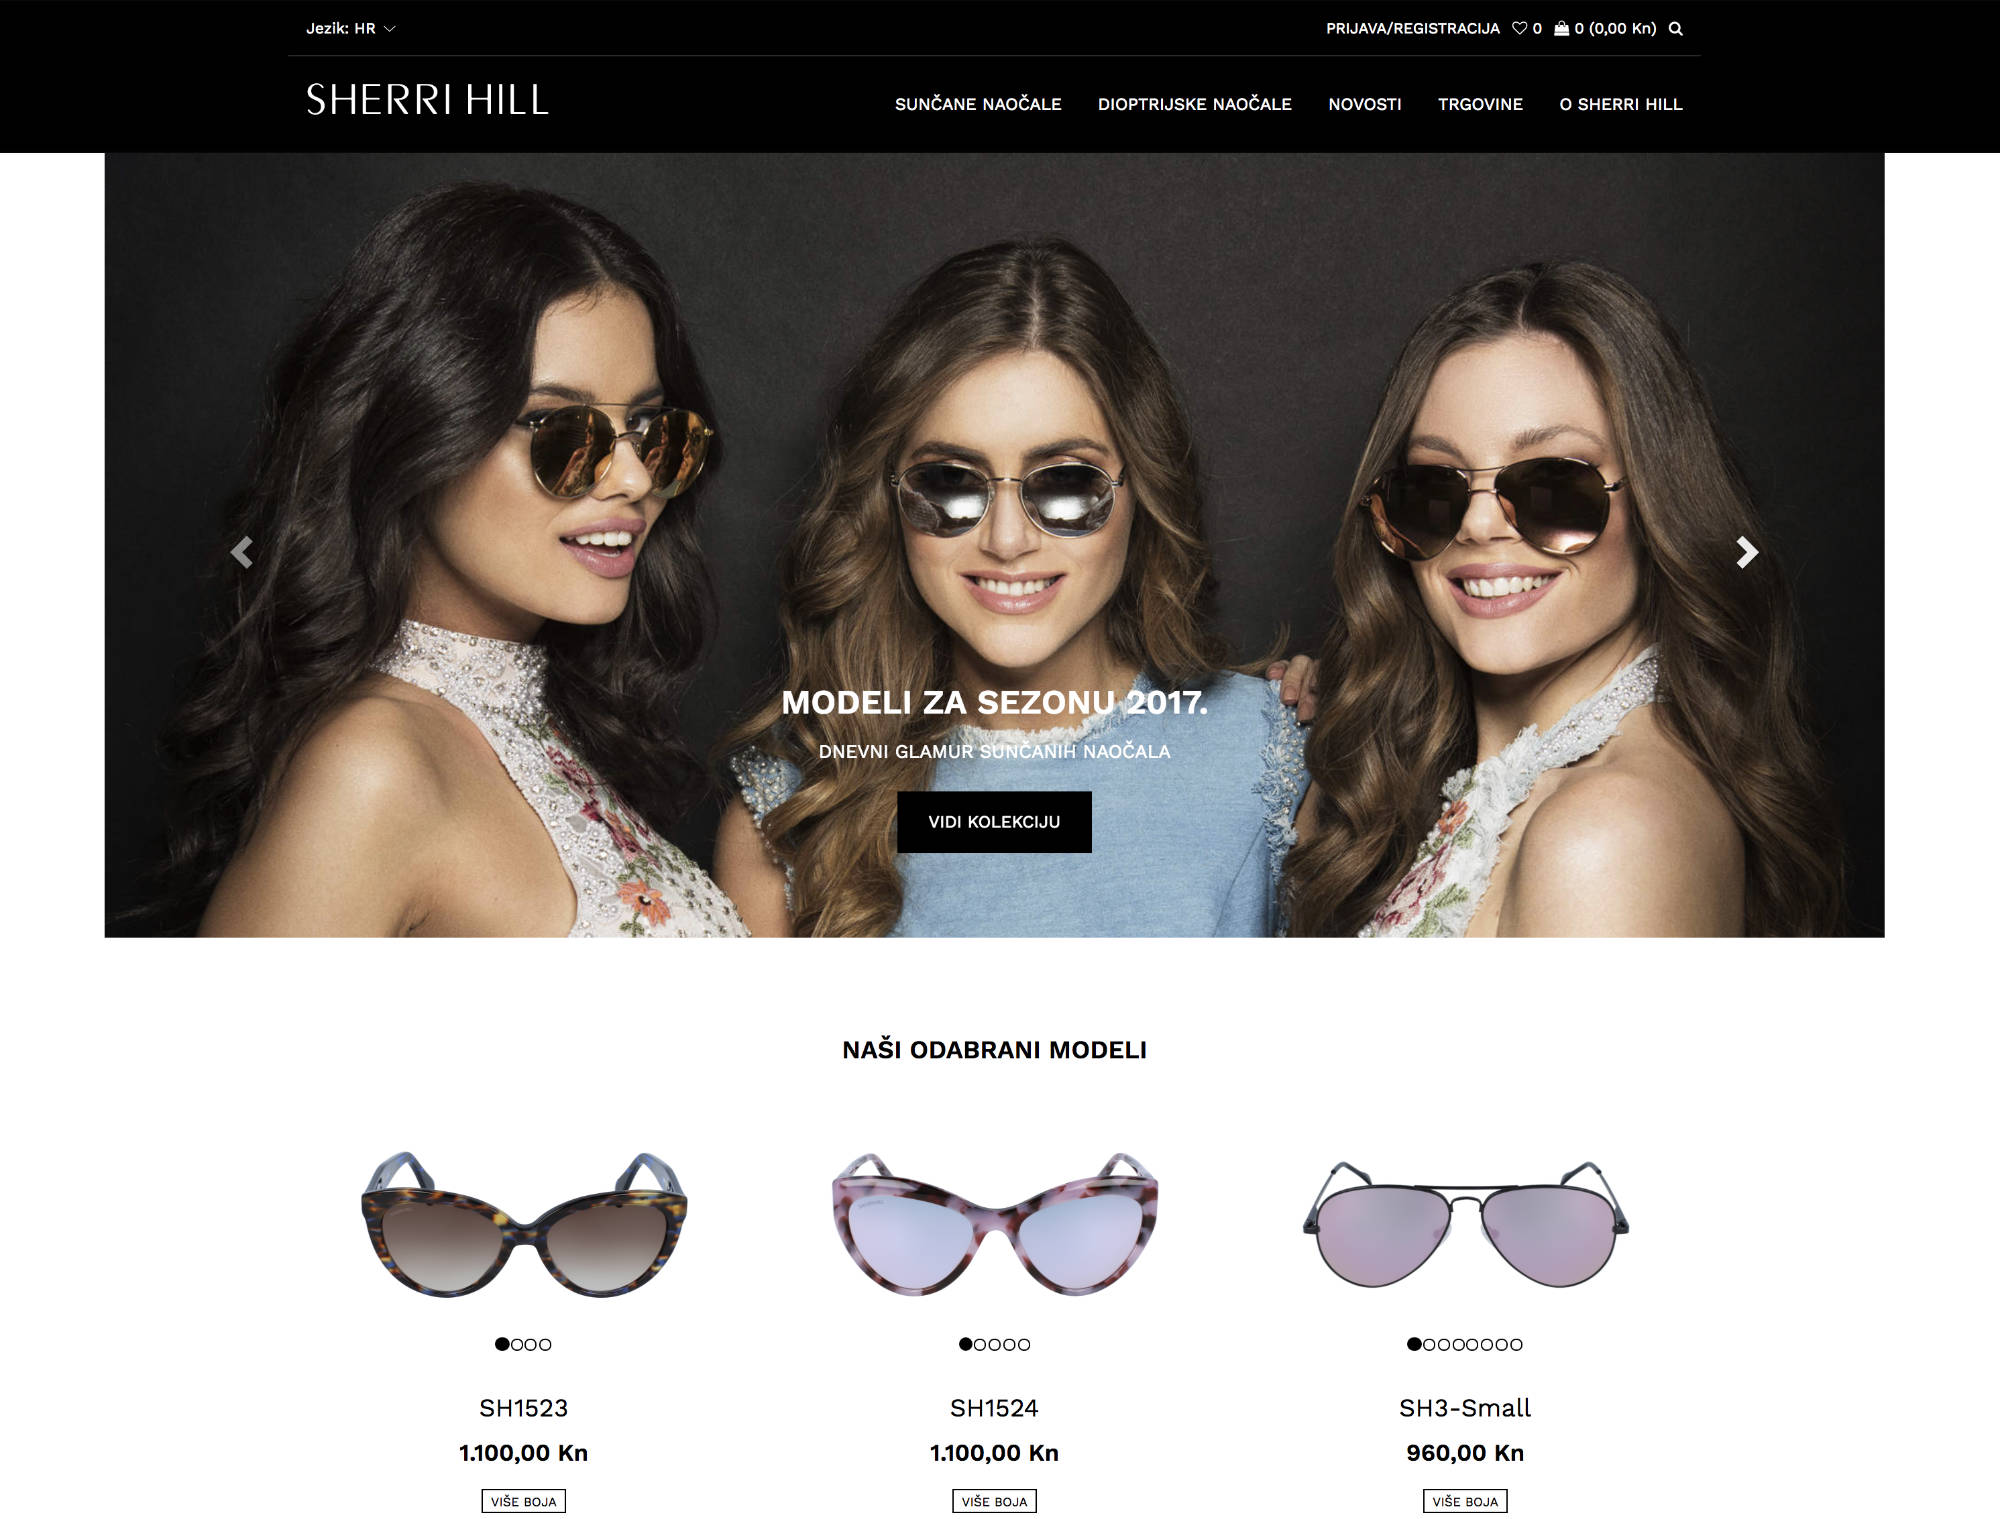 Sherri Hill Website